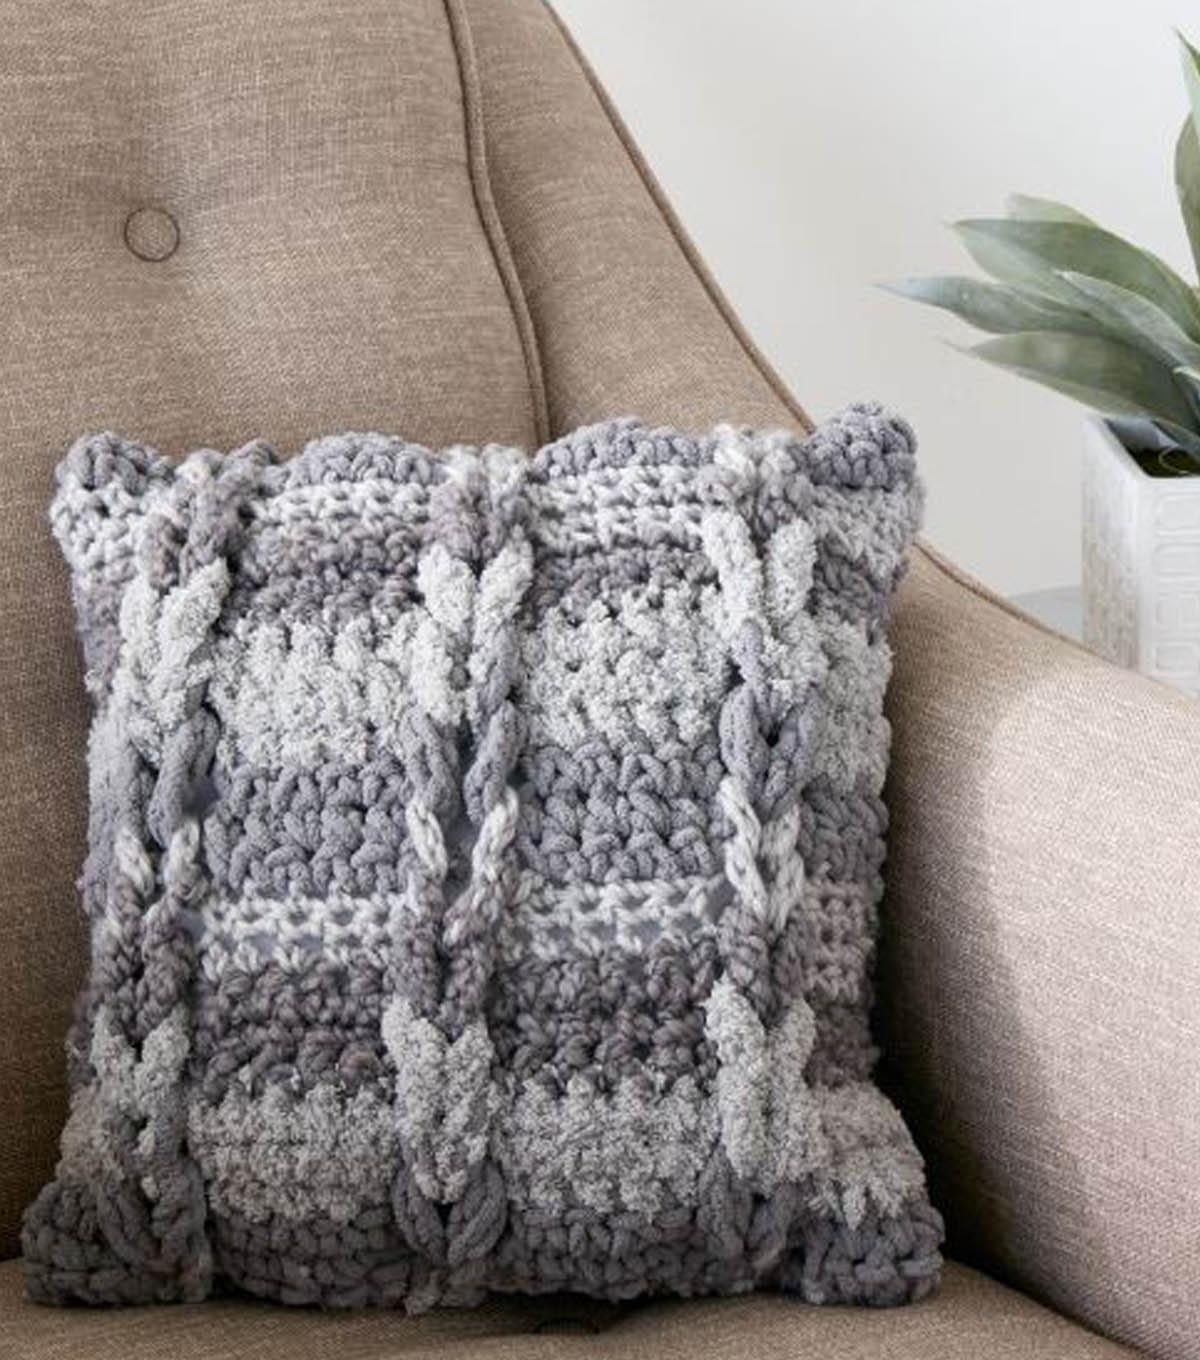 How to crochet a cable pillow joann how to crochet a cable pillow bankloansurffo Choice Image